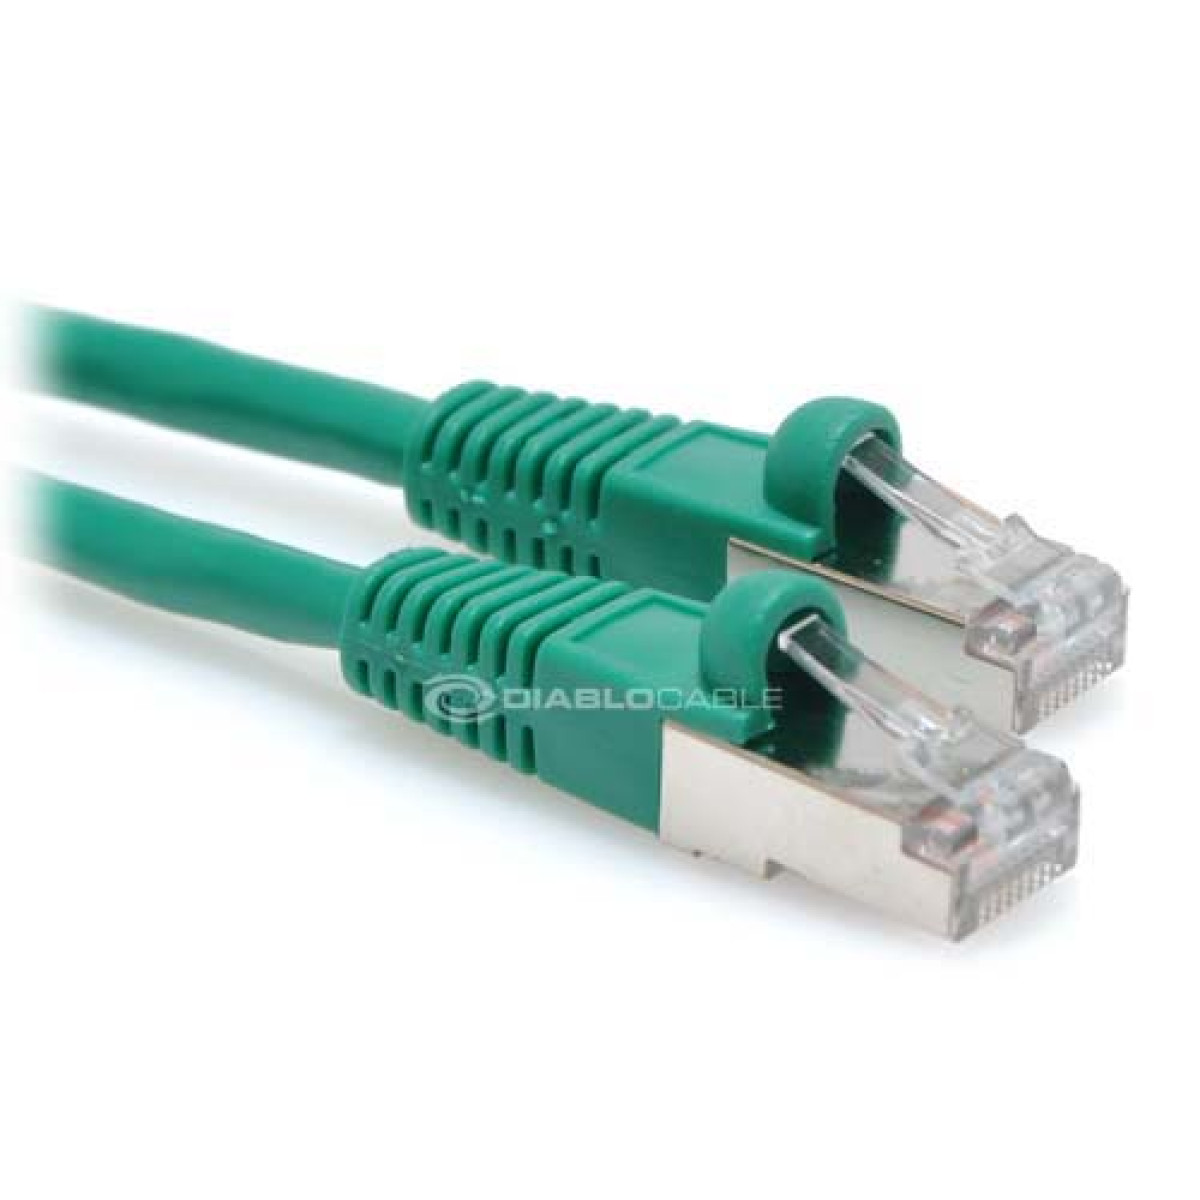 6ft Cat6 550MHz Bare Copper STP Shielded Ethernet Network Cable - Green